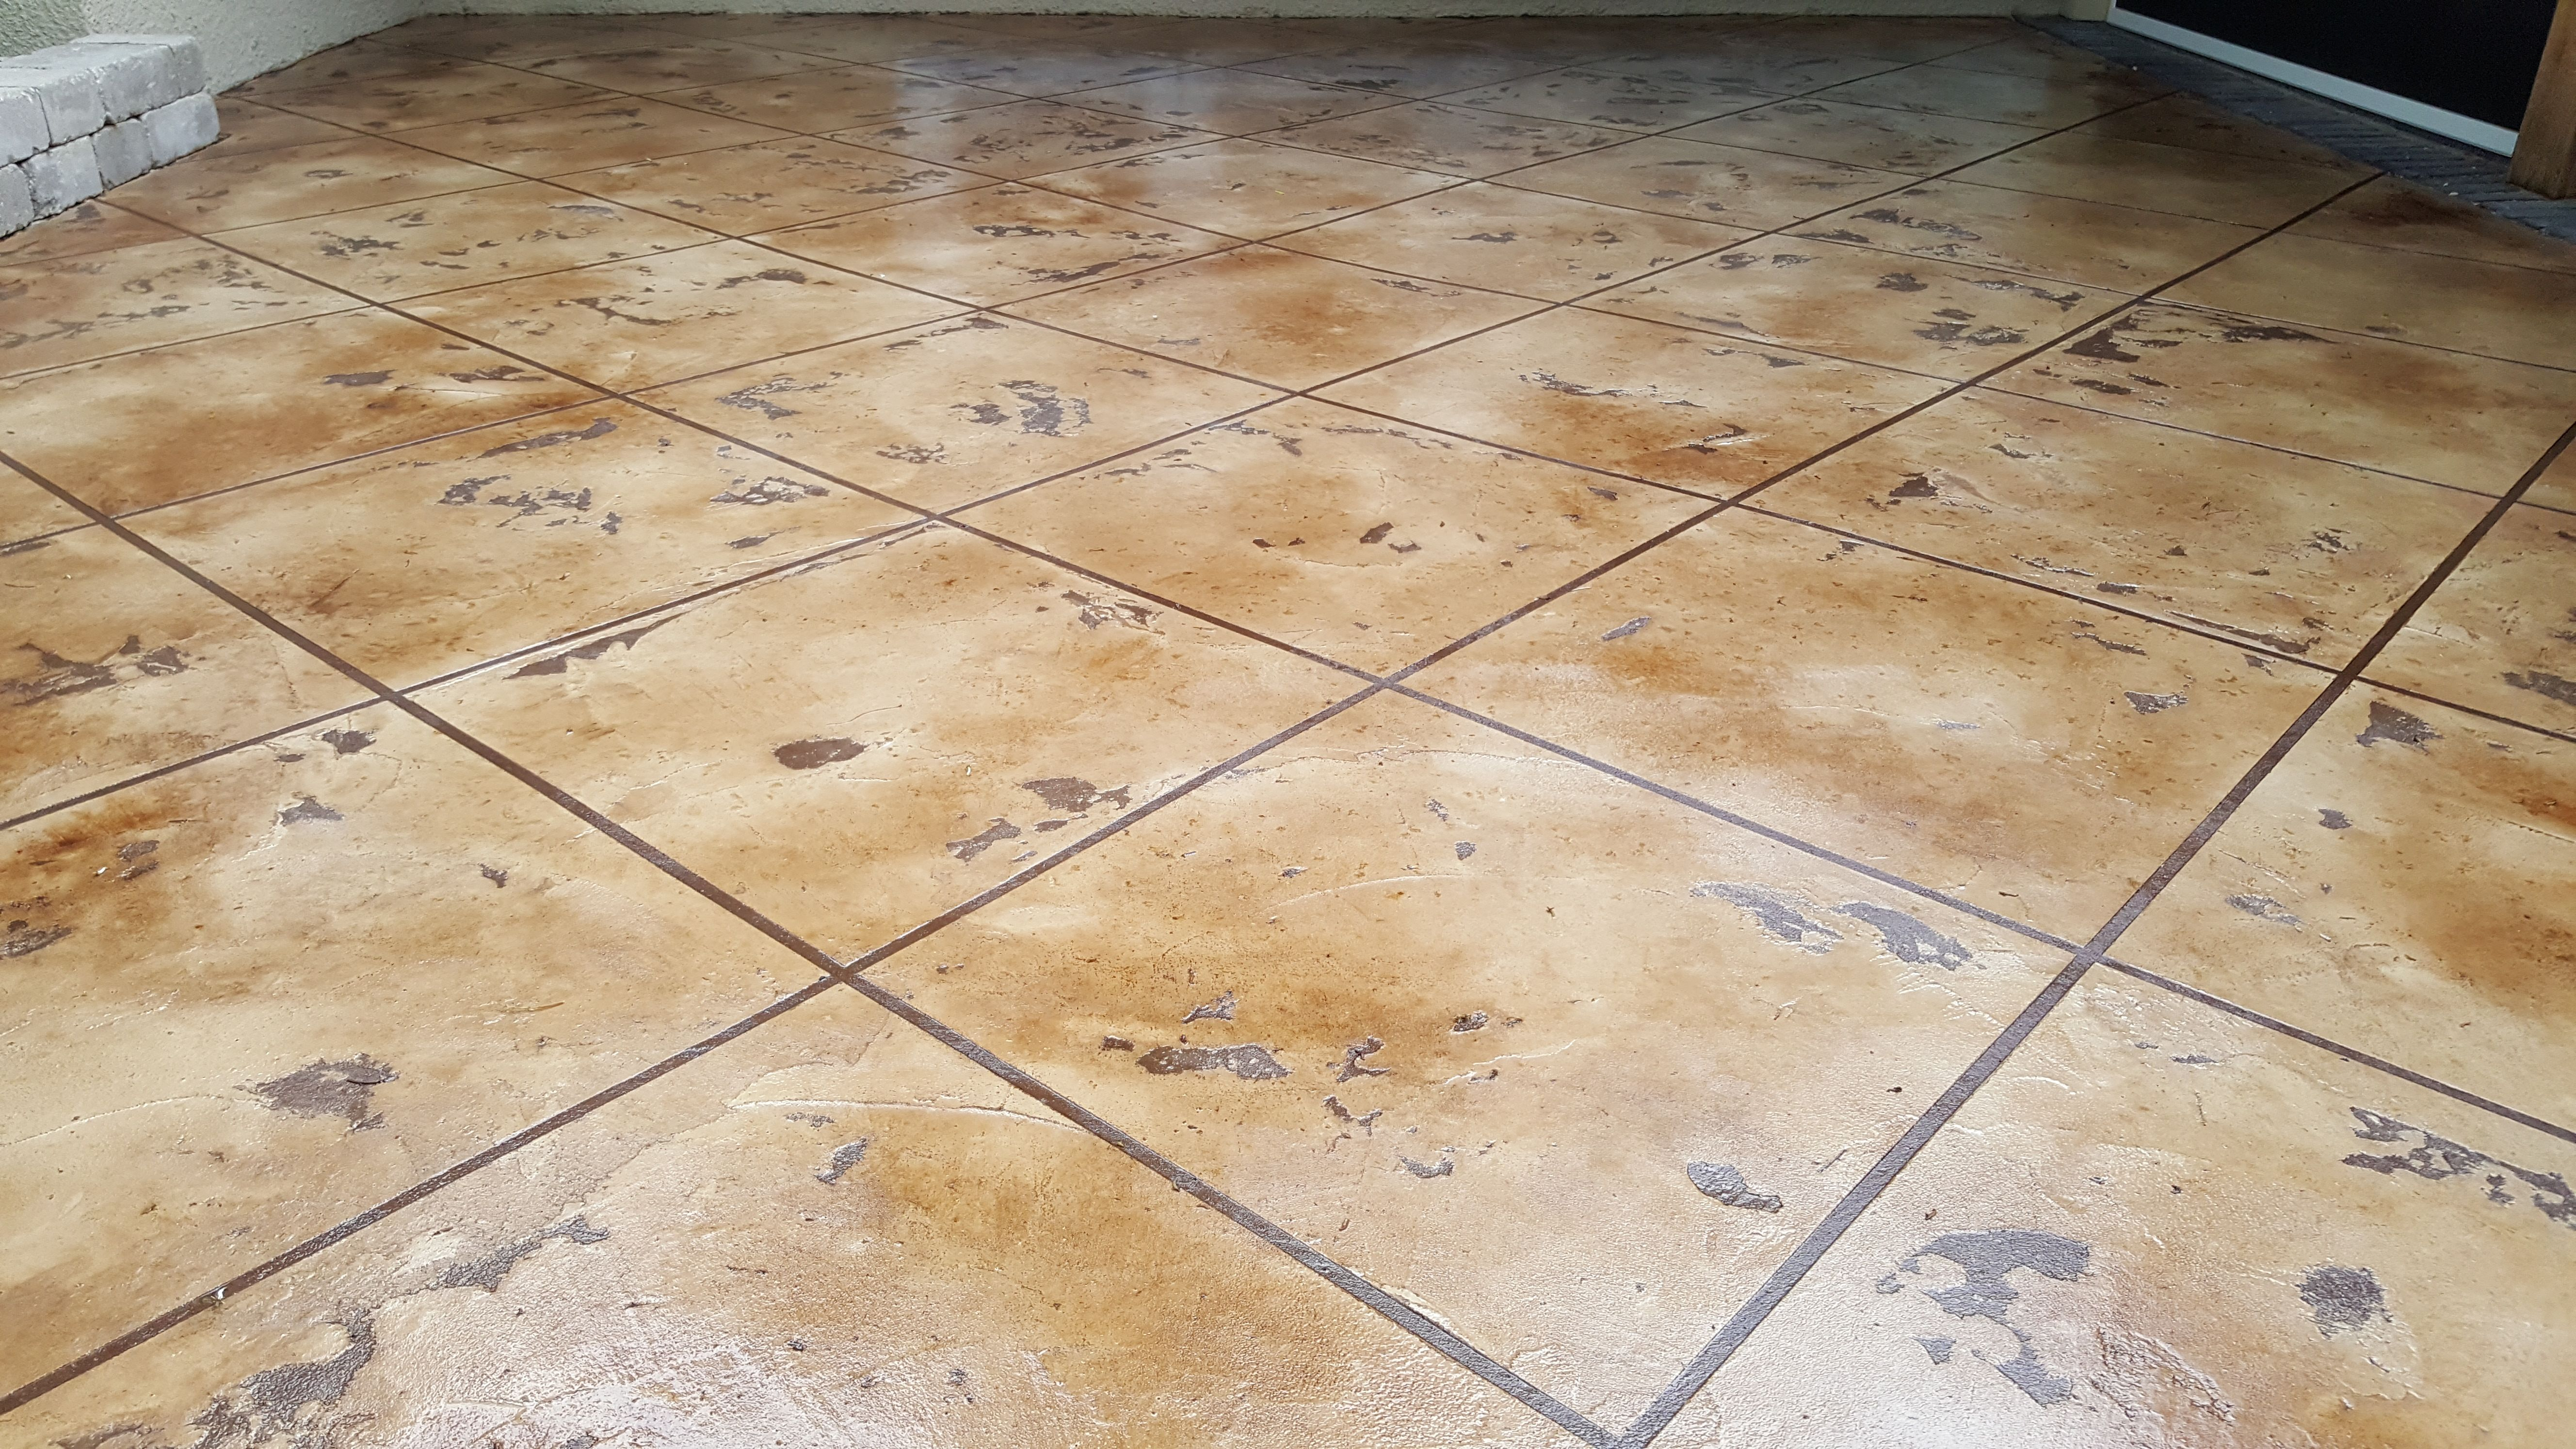 Concrete Staining Tuscan Slate Tile Pattern For A Patio In Grandview Ohio